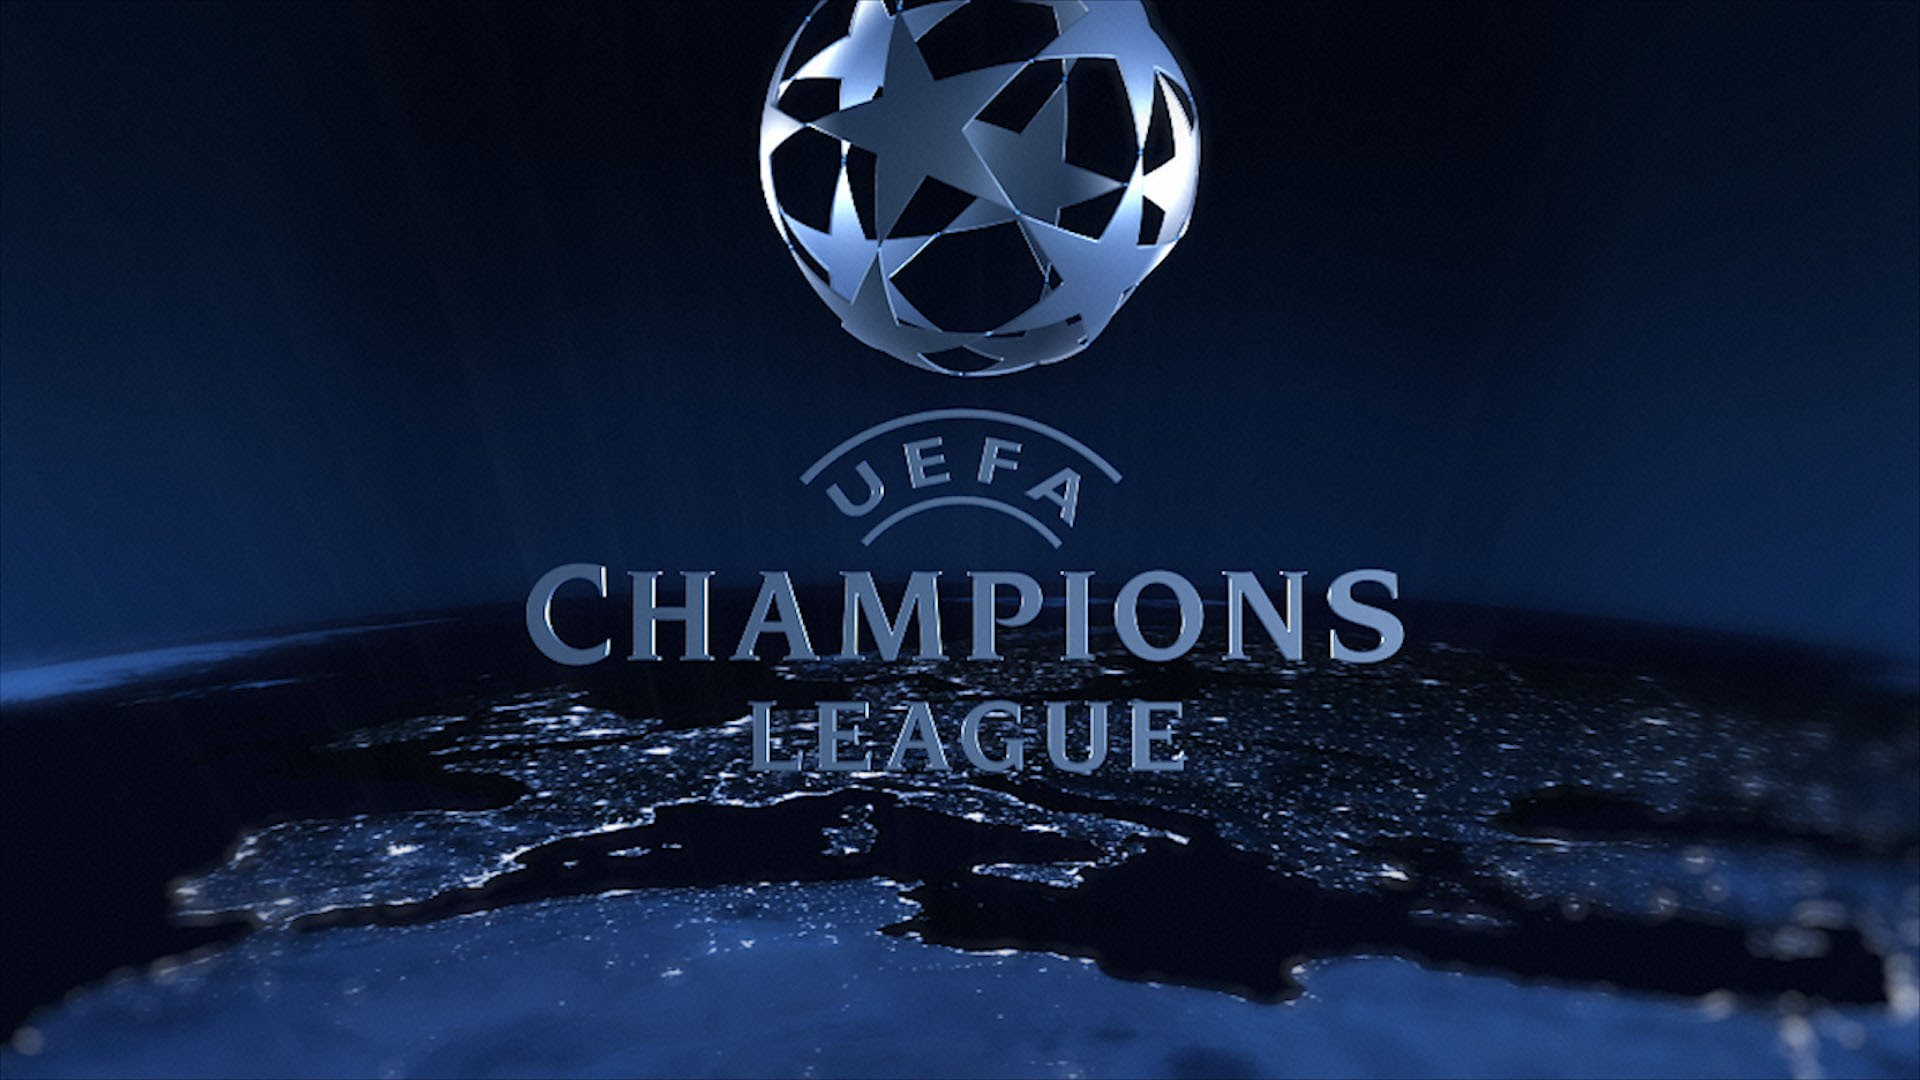 UEFA Champions League Wallpapers   HD Wallpapers 1920x1080